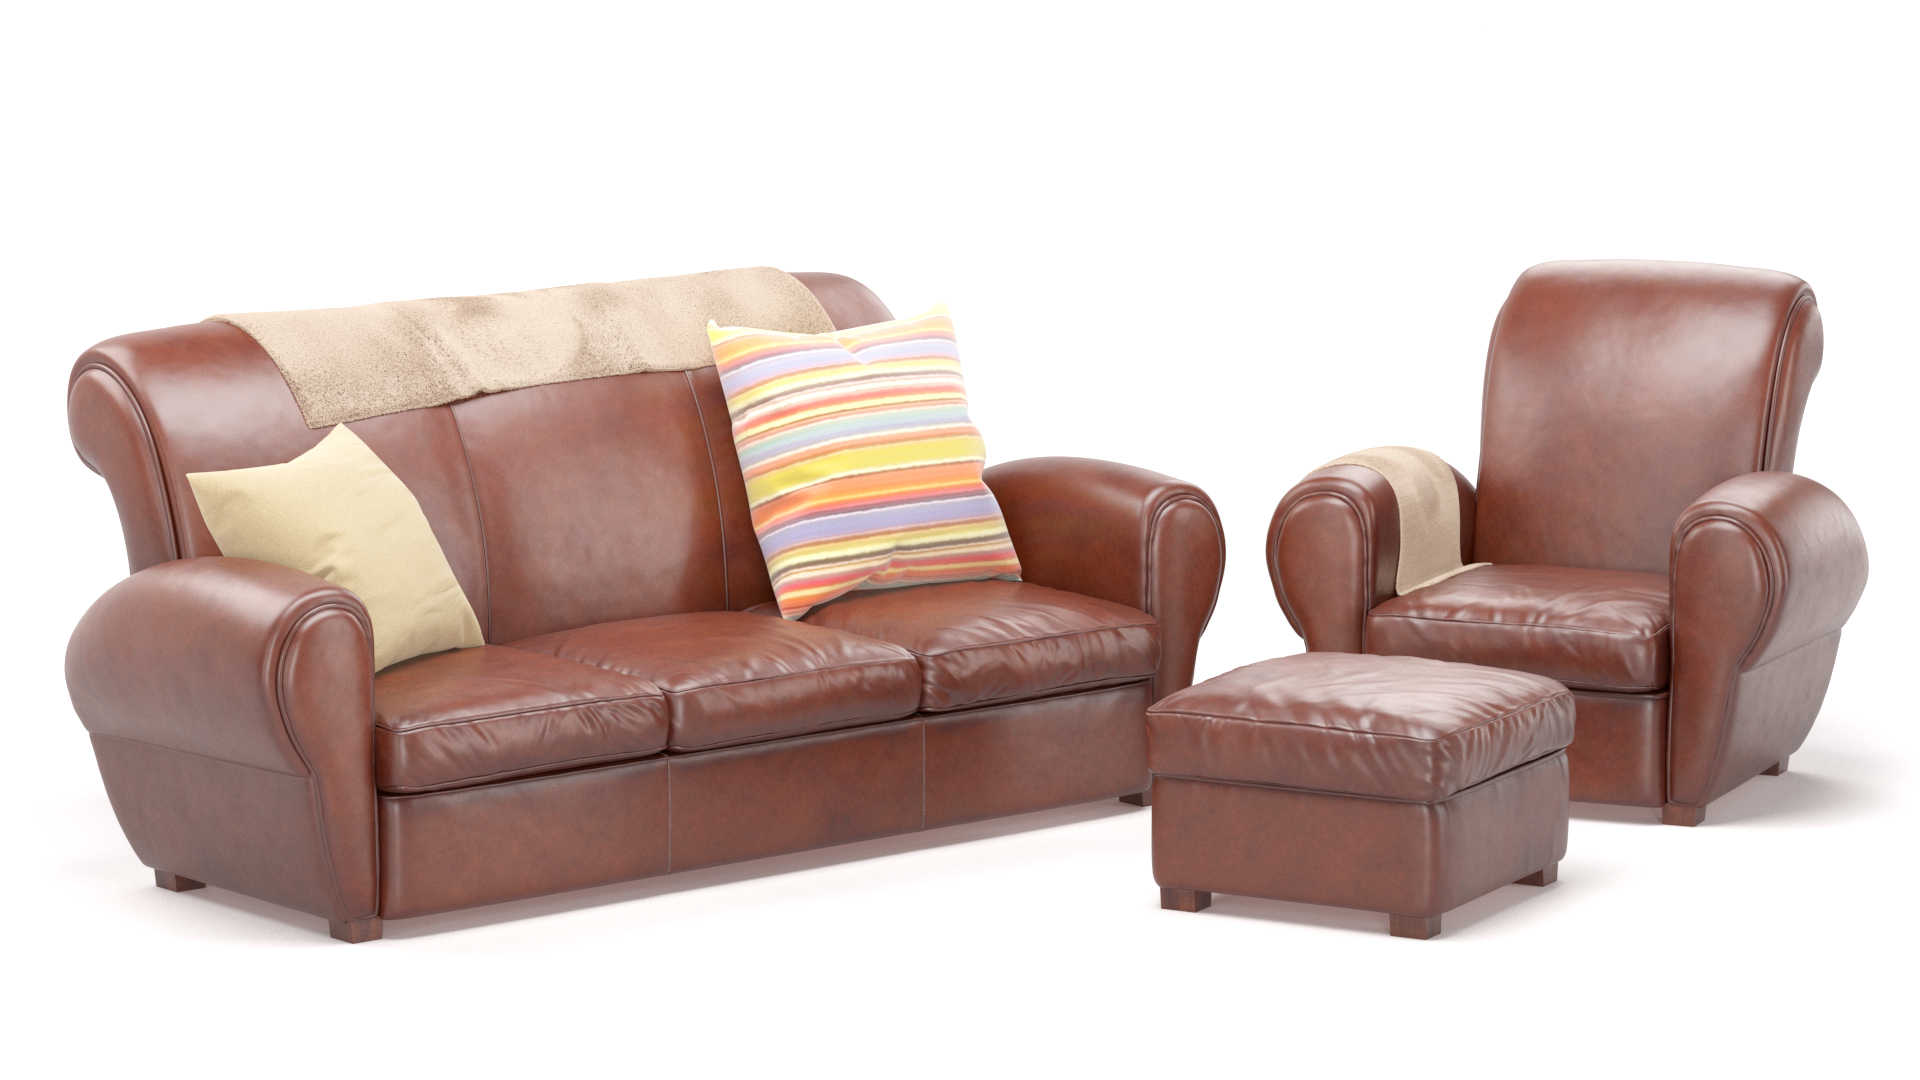 Fabulous Moroni Havana Leather Sofa Gmtry Best Dining Table And Chair Ideas Images Gmtryco